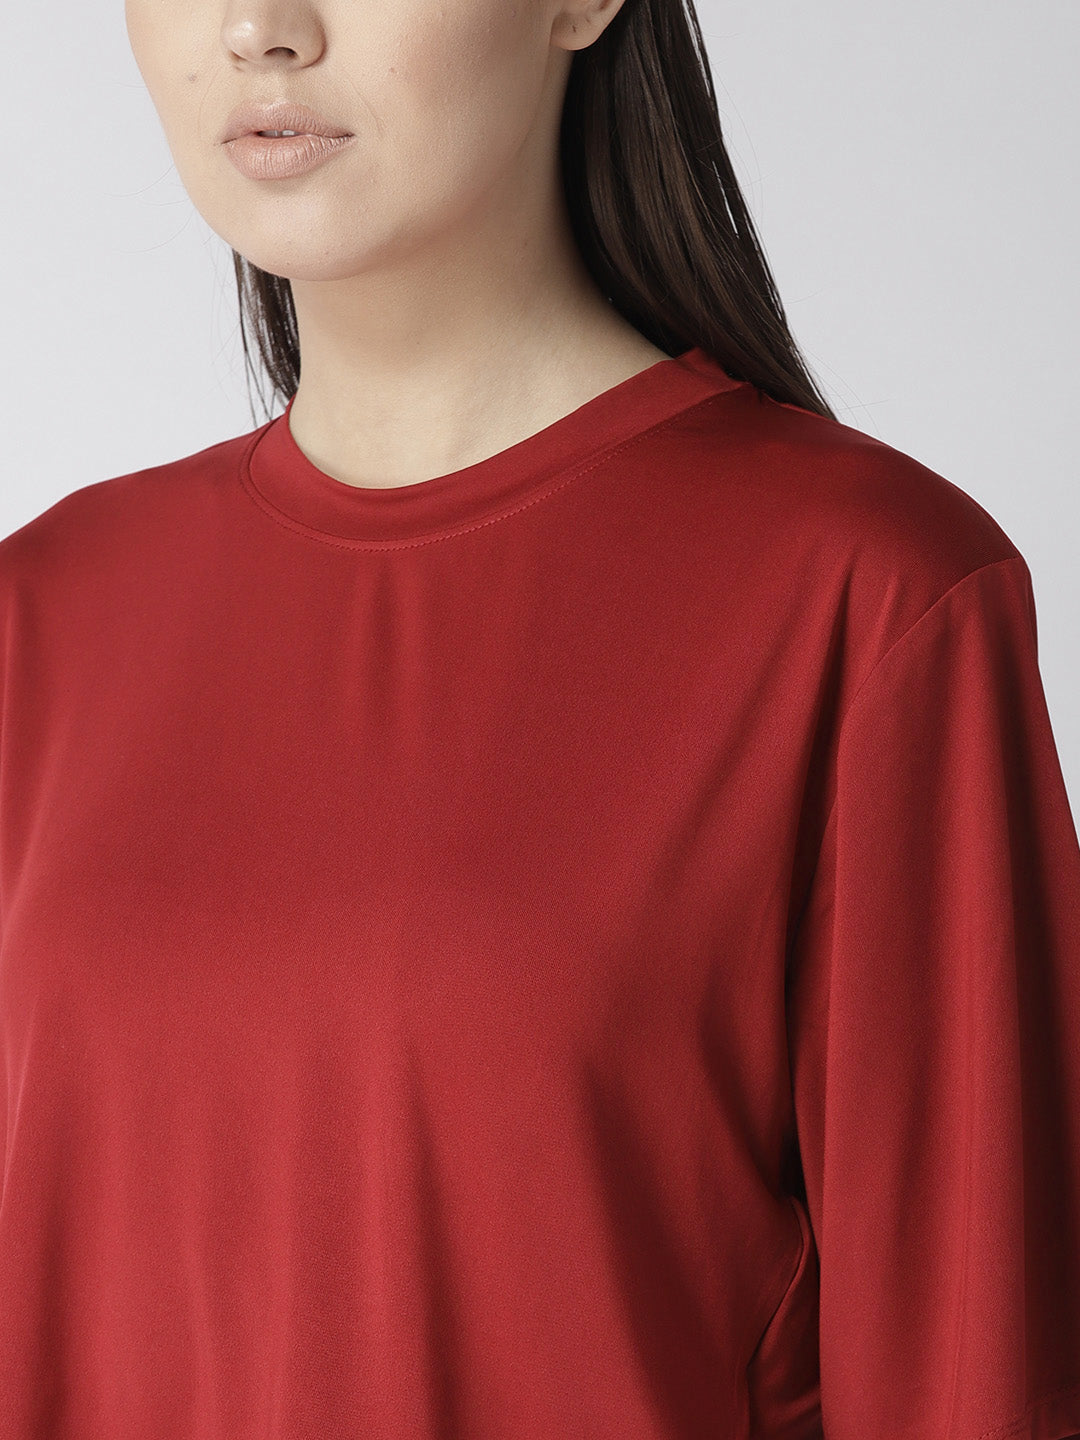 Fitkin Relaxed Fit Mid-length top with a mesh layering at the back.